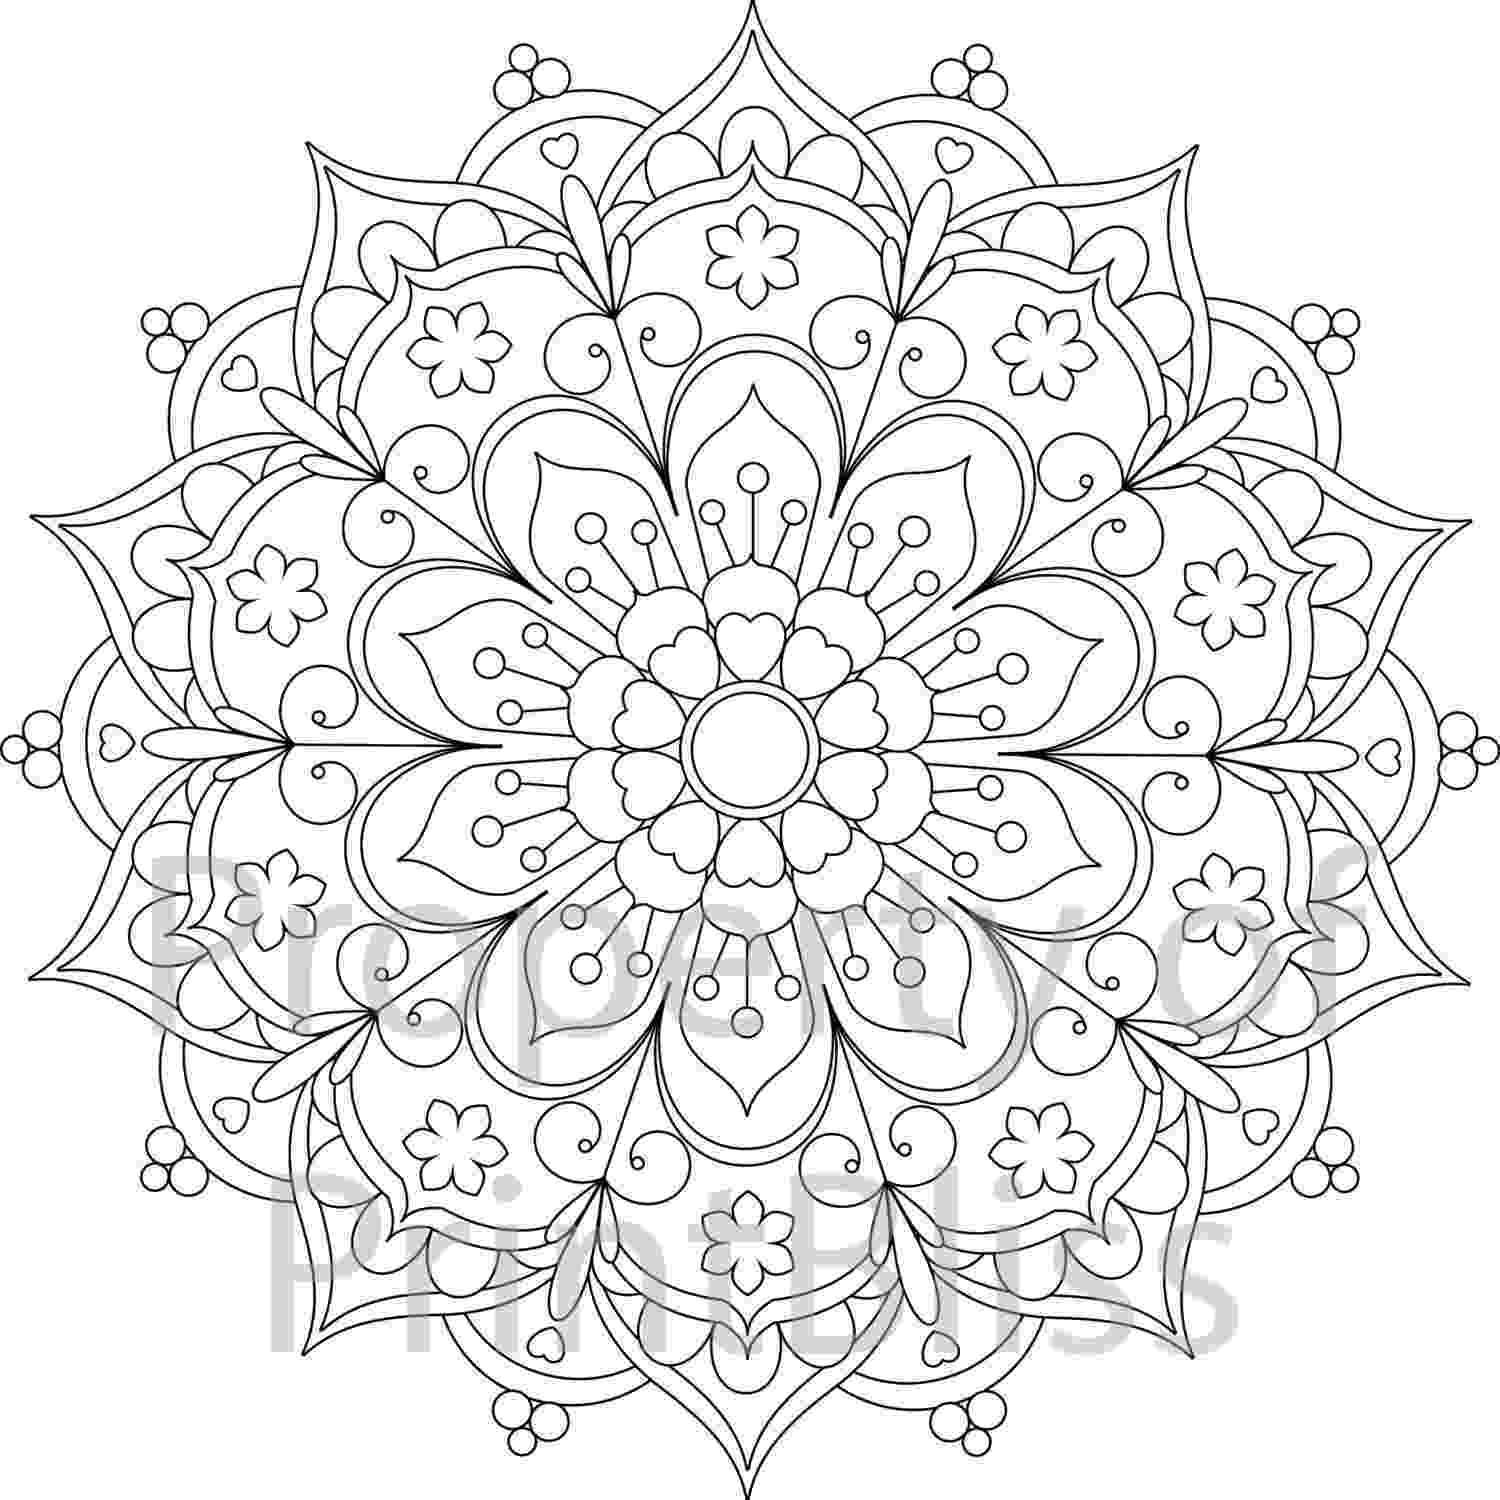 free printable mandalas for adults free printable mandala coloring pages for adults best mandalas for adults printable free